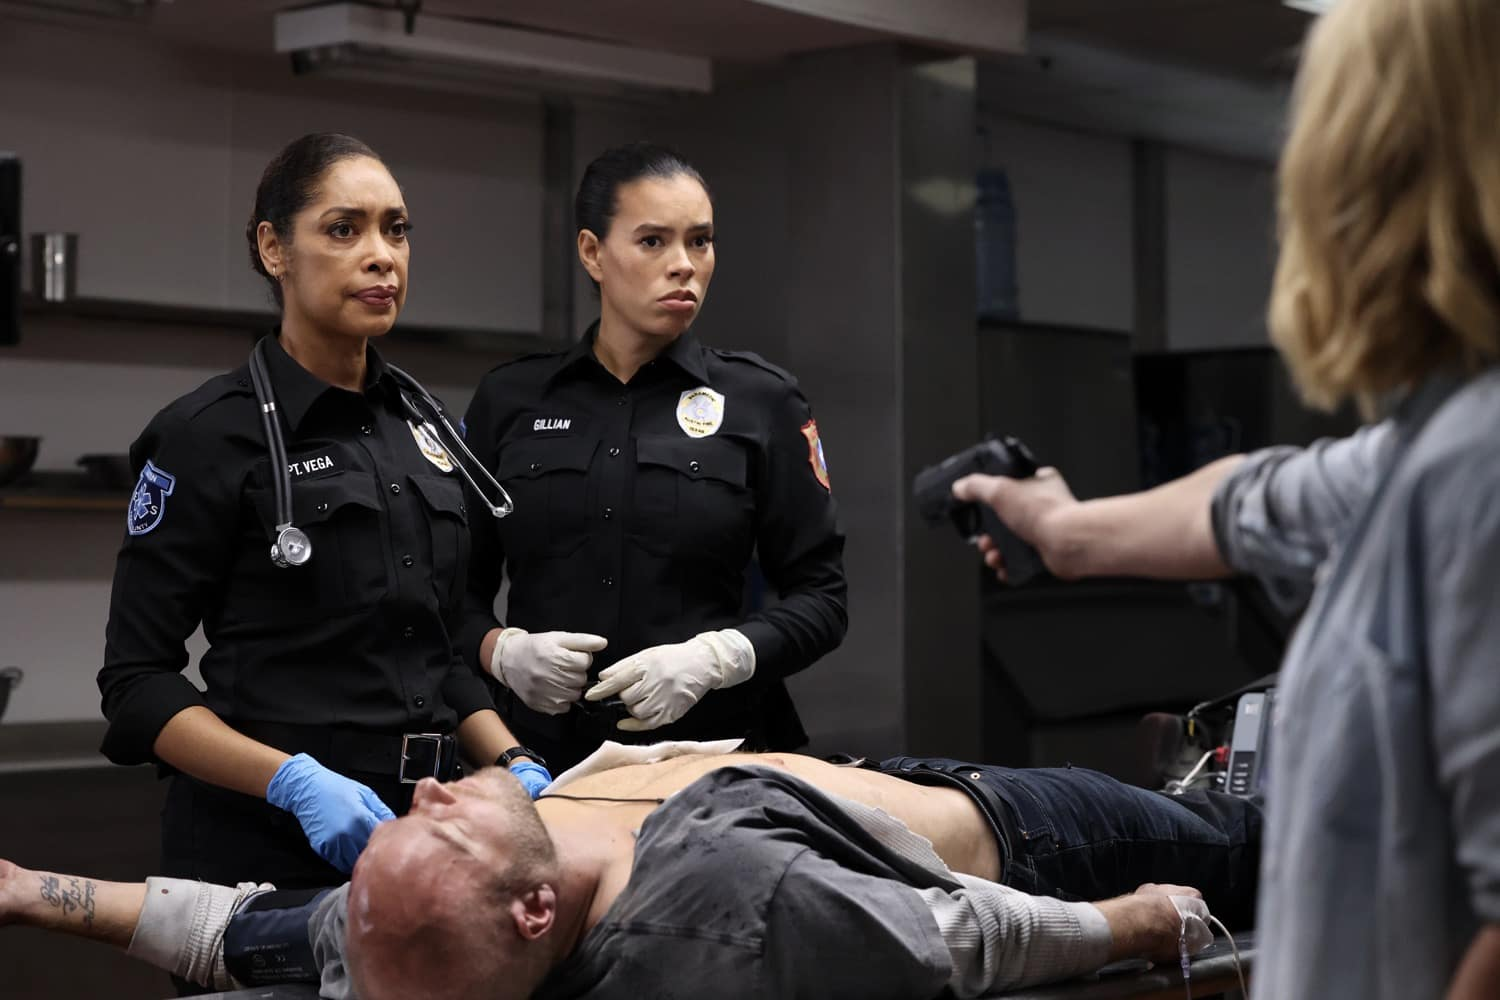 """9-1-1 Season 2 Episode 8 : LONE STAR: L-R: Gina Torres and guest star Brianna Baker in the """"Bad Call"""" episode of 9-1-1: LONE STAR airing Monday, March 8 (9:01-10:00 PM ET/PT) on FOX. © 2021 Fox Media LLC. CR: Jordin Althaus/FOX."""